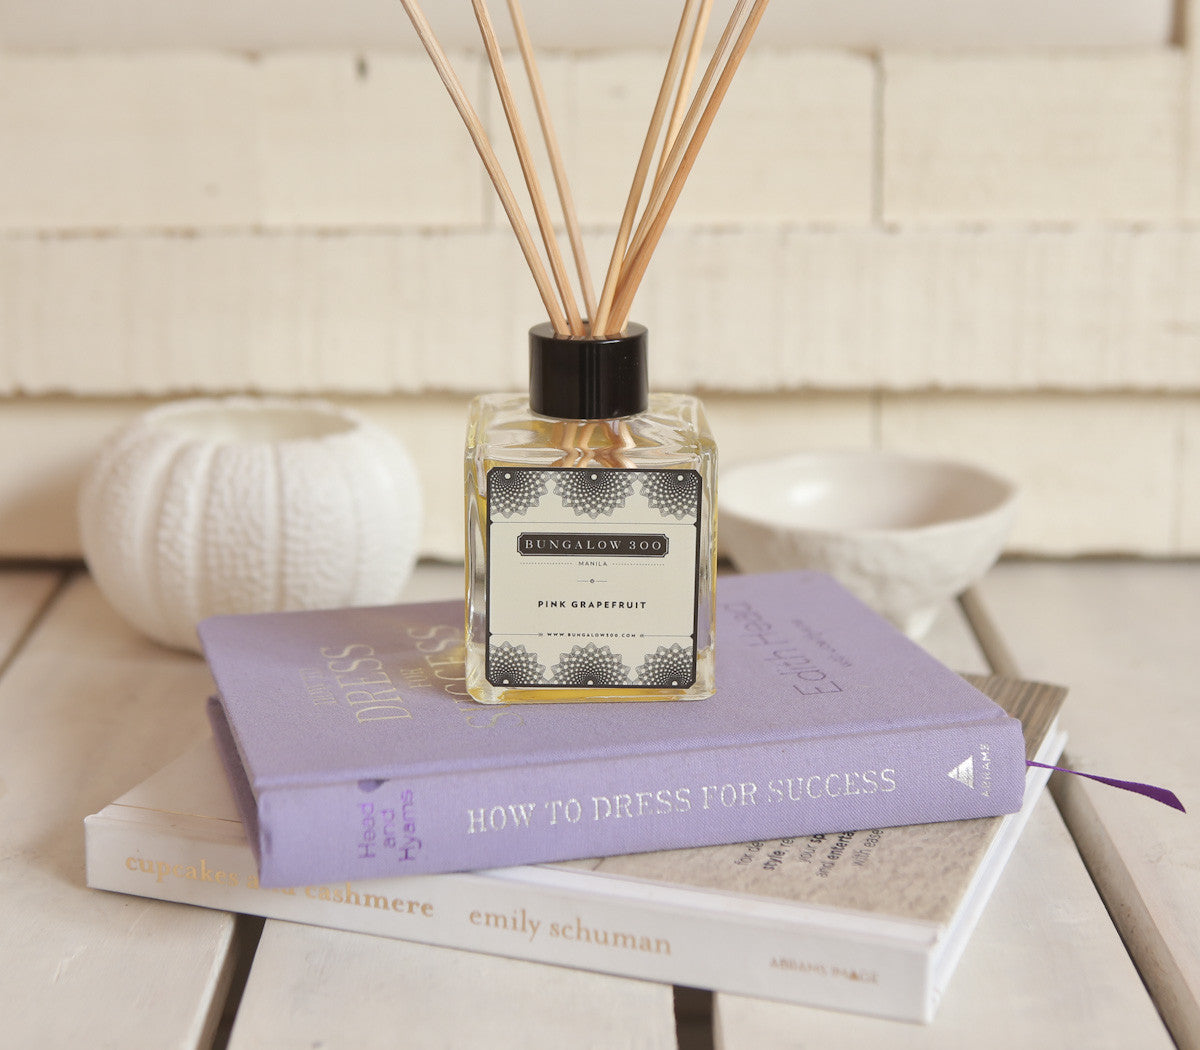 fragrance bungalow 300 organic scent diffuser pink grapefruit - Scent Diffuser